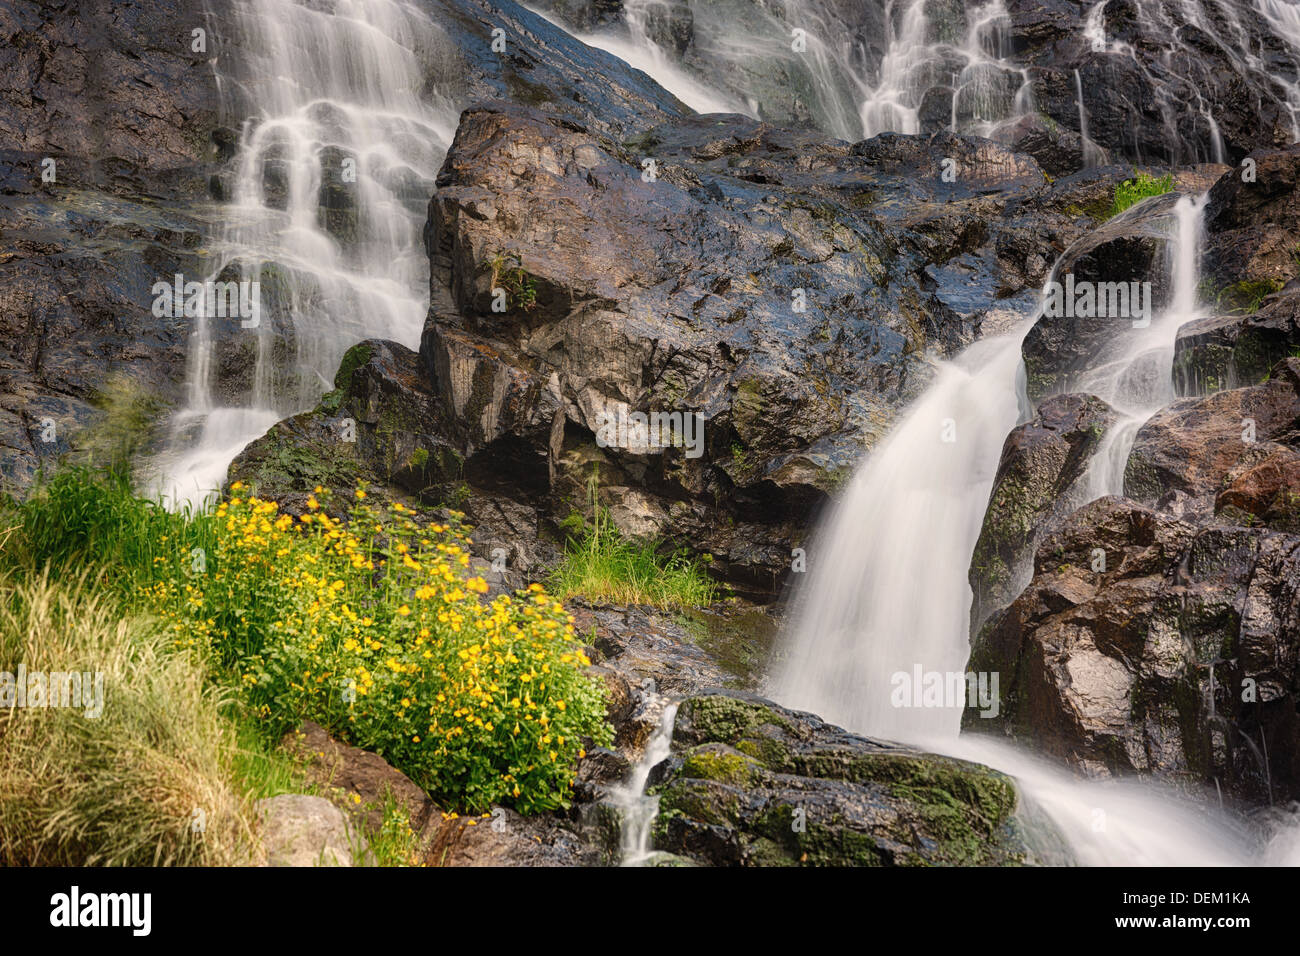 Todtnauer Waterfalls with yellow flowers, Black Forest, Germany - Stock Image